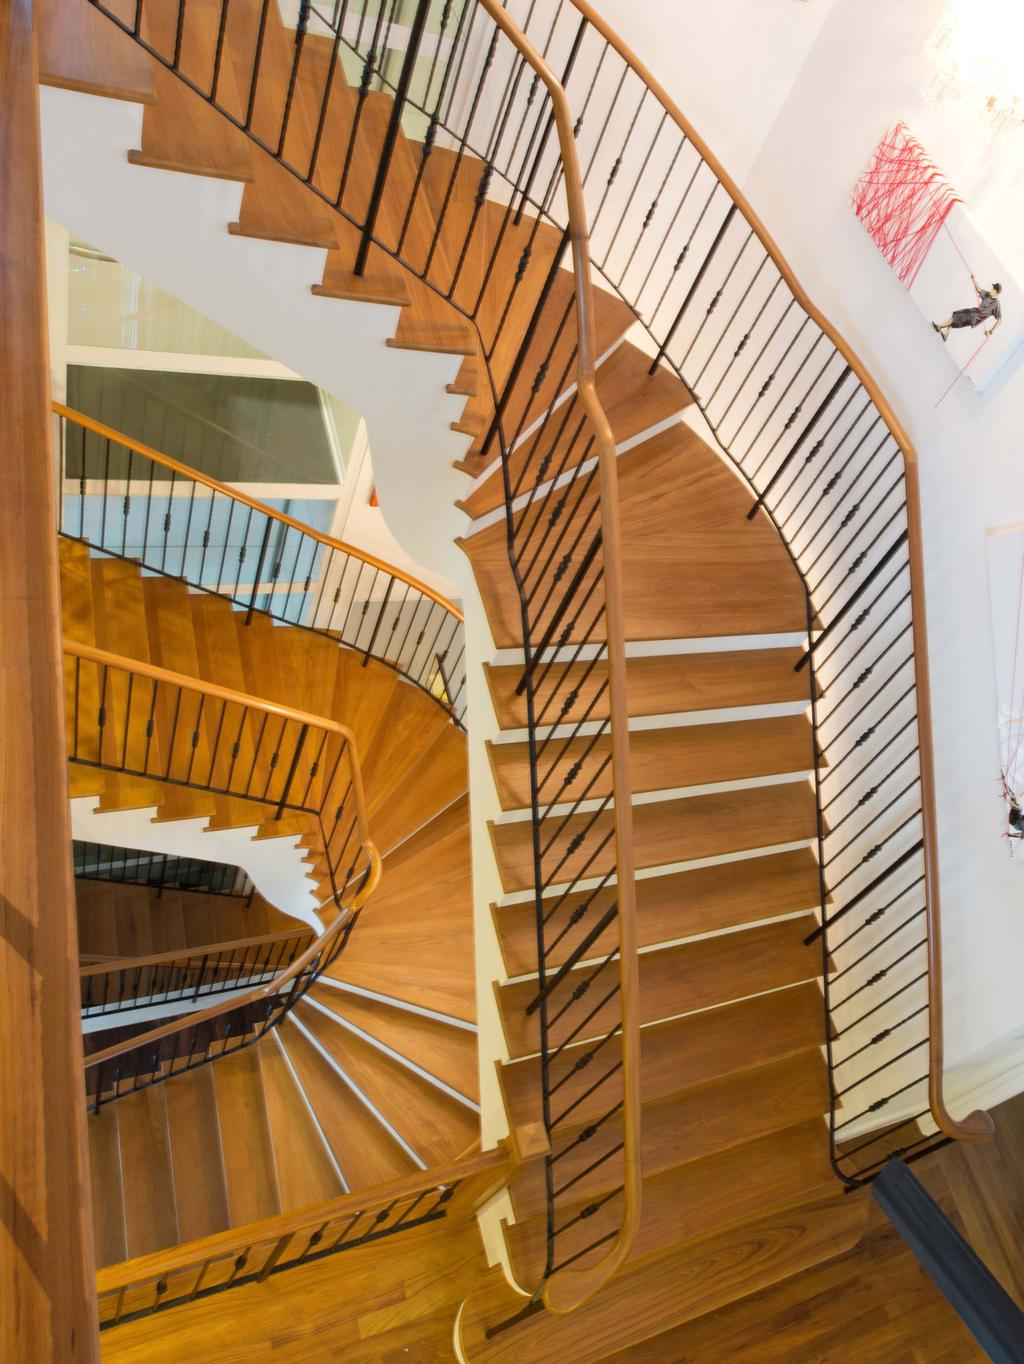 Modern, Landed, Bukit Sedap, Architect, TENarchitects, Stairs, Stairway, Staircase, Wooden Stairs, Banister, Handrail